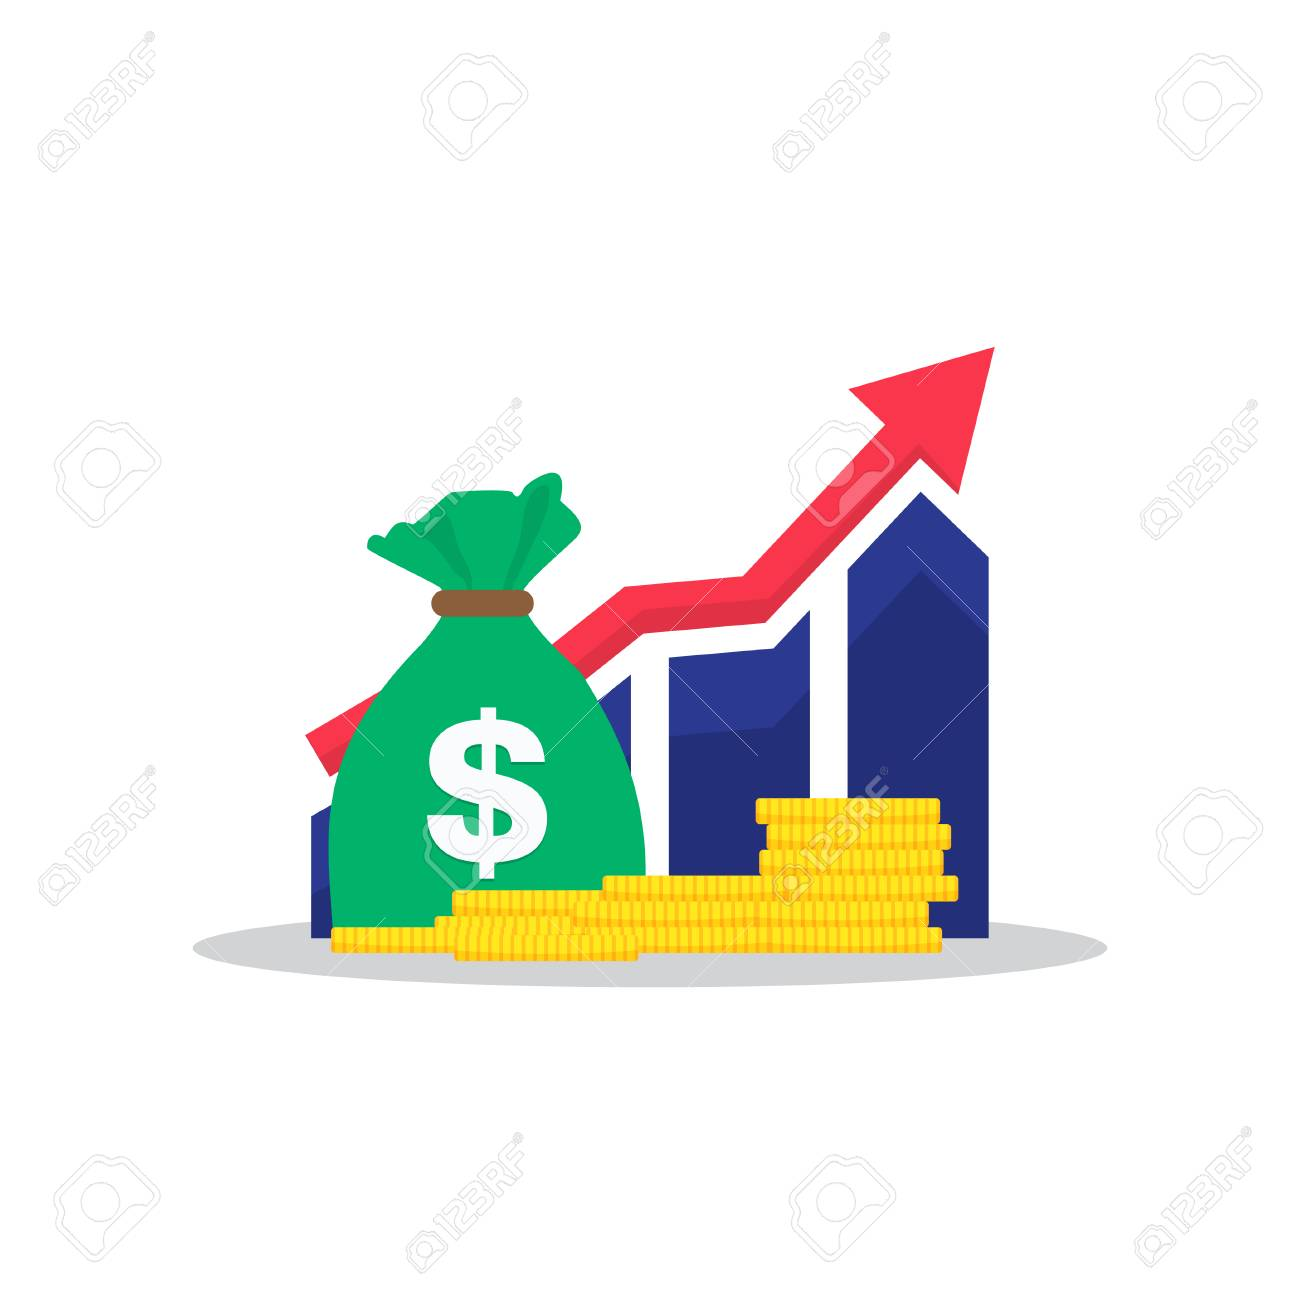 Income Clipart - Income Increase, Financial Strategy, High Return On Investment ...